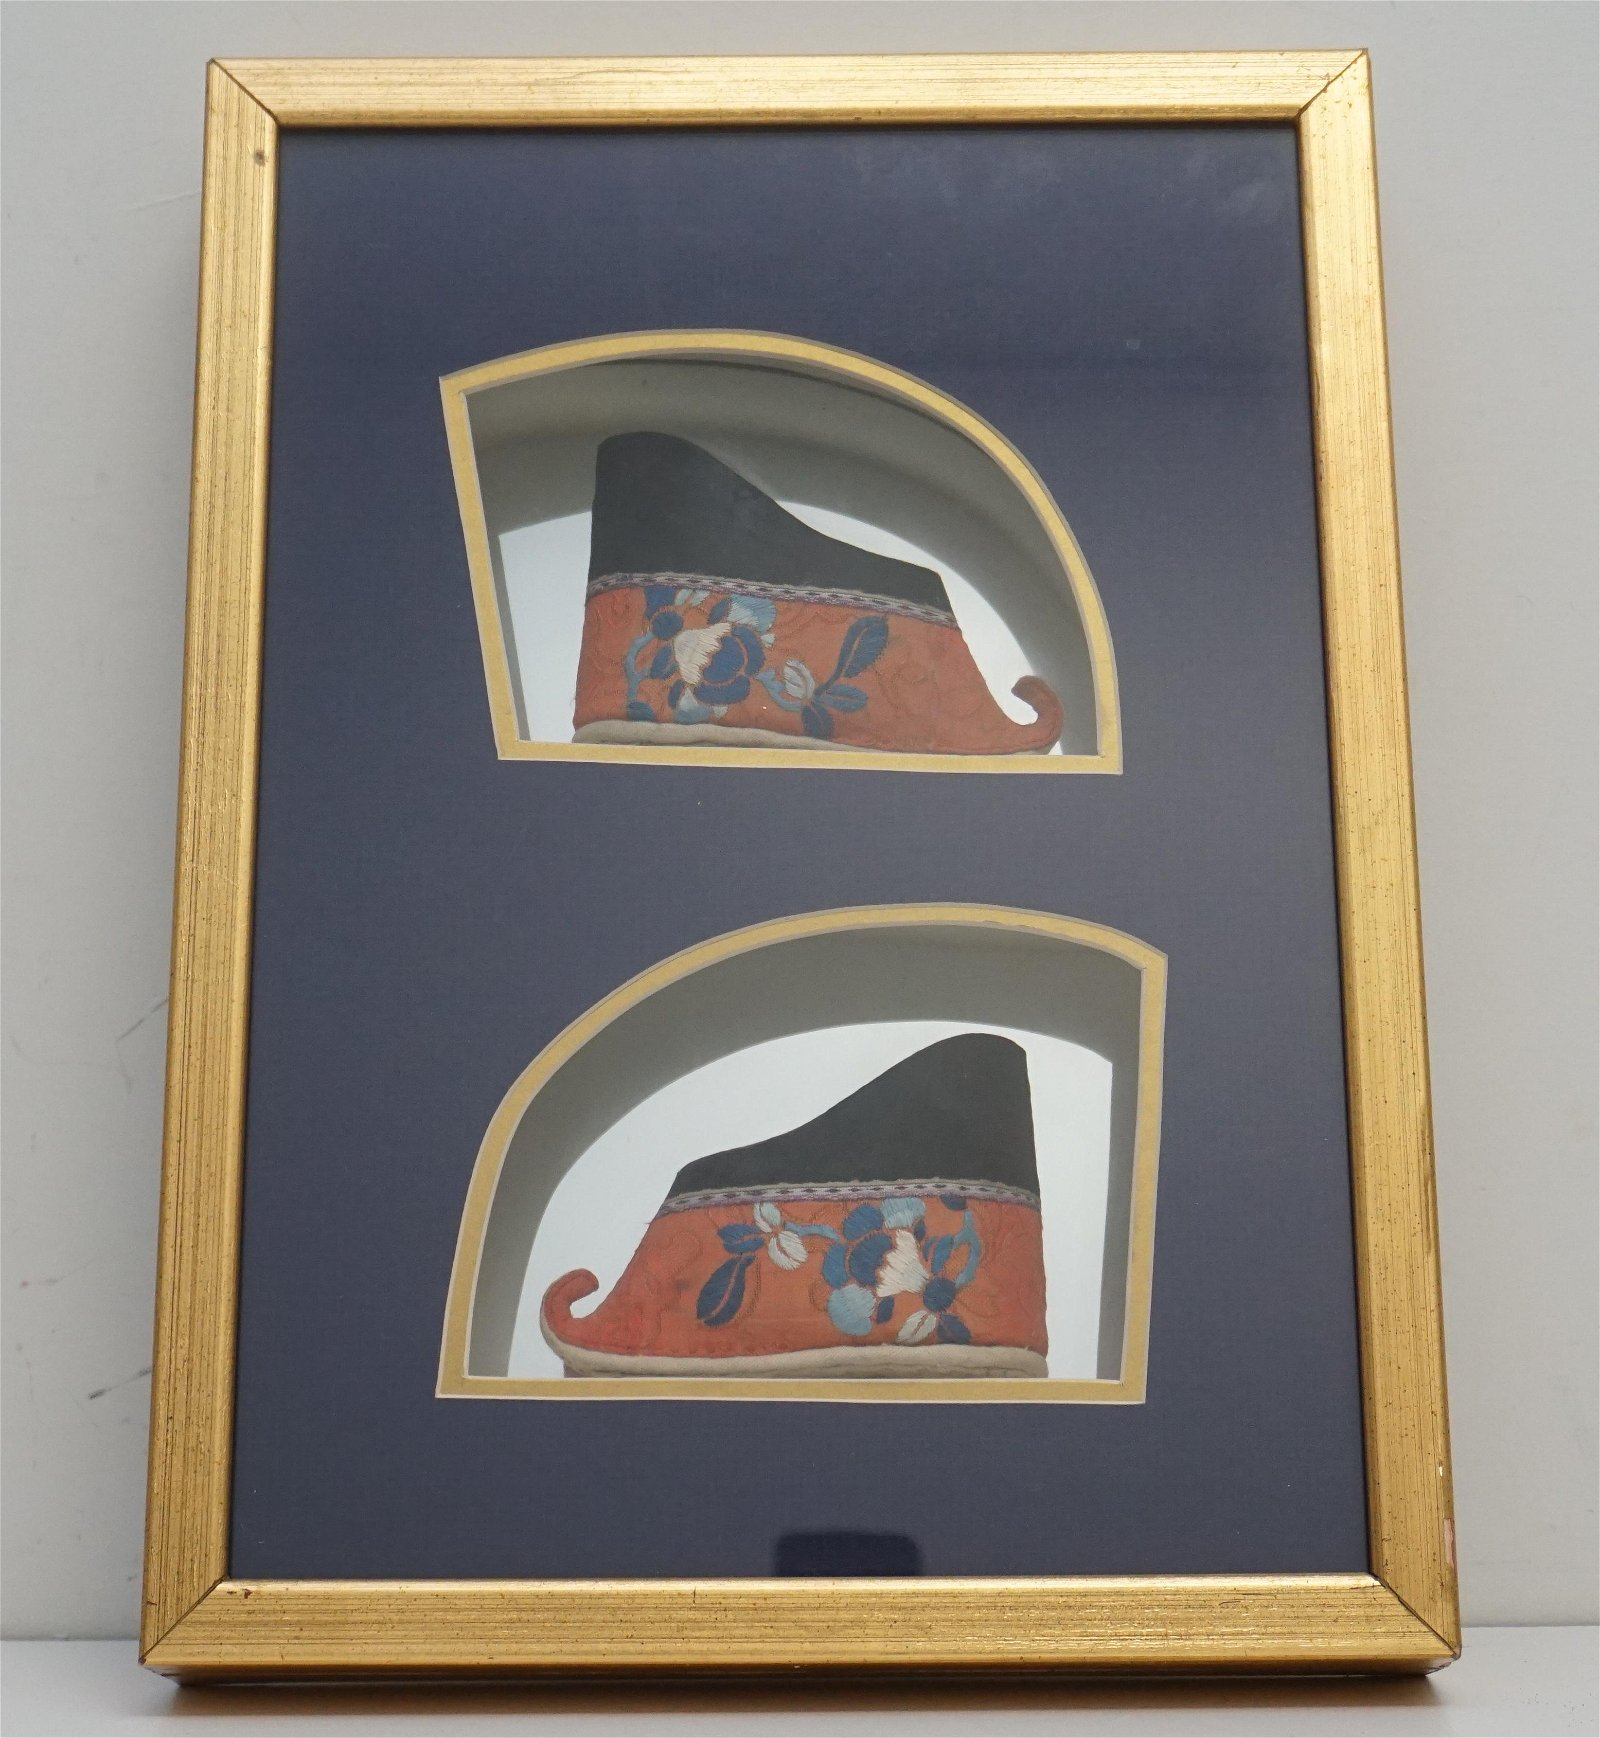 FRAMED QING DYNASTY CHINESE LOTUS SLIPPERS